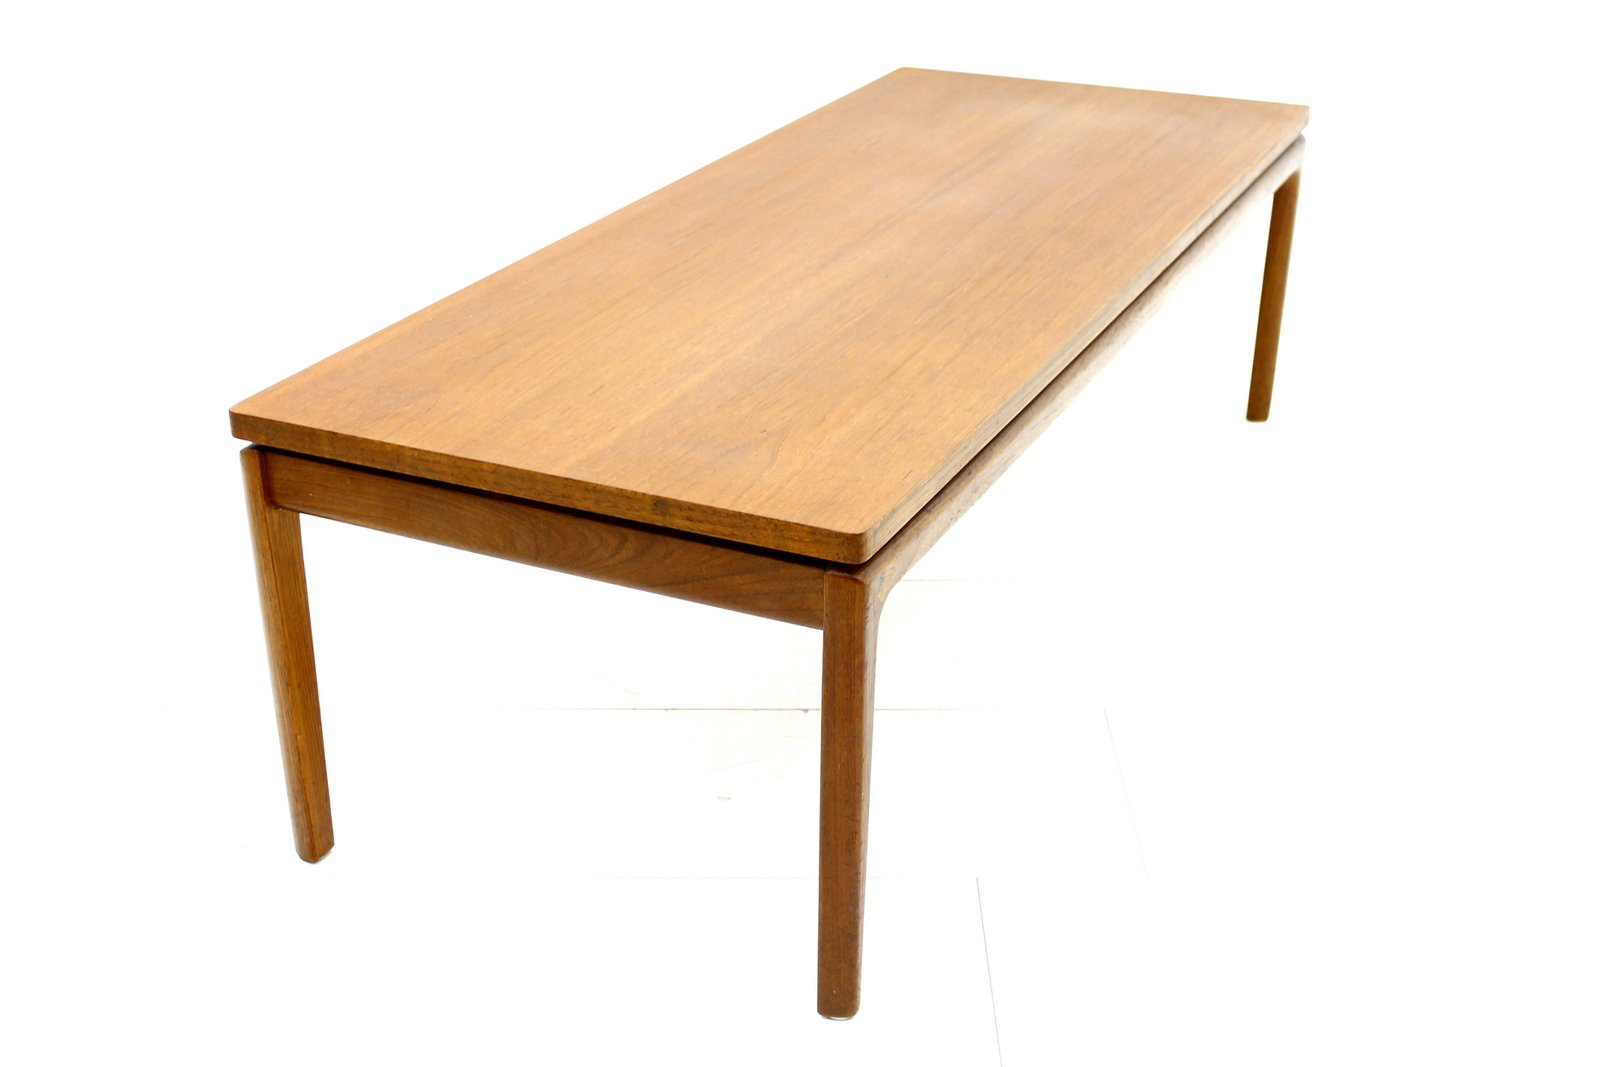 Danish Teak Coffee Table By Ole Wanscher For France Son 1960s For Sale At Pamono